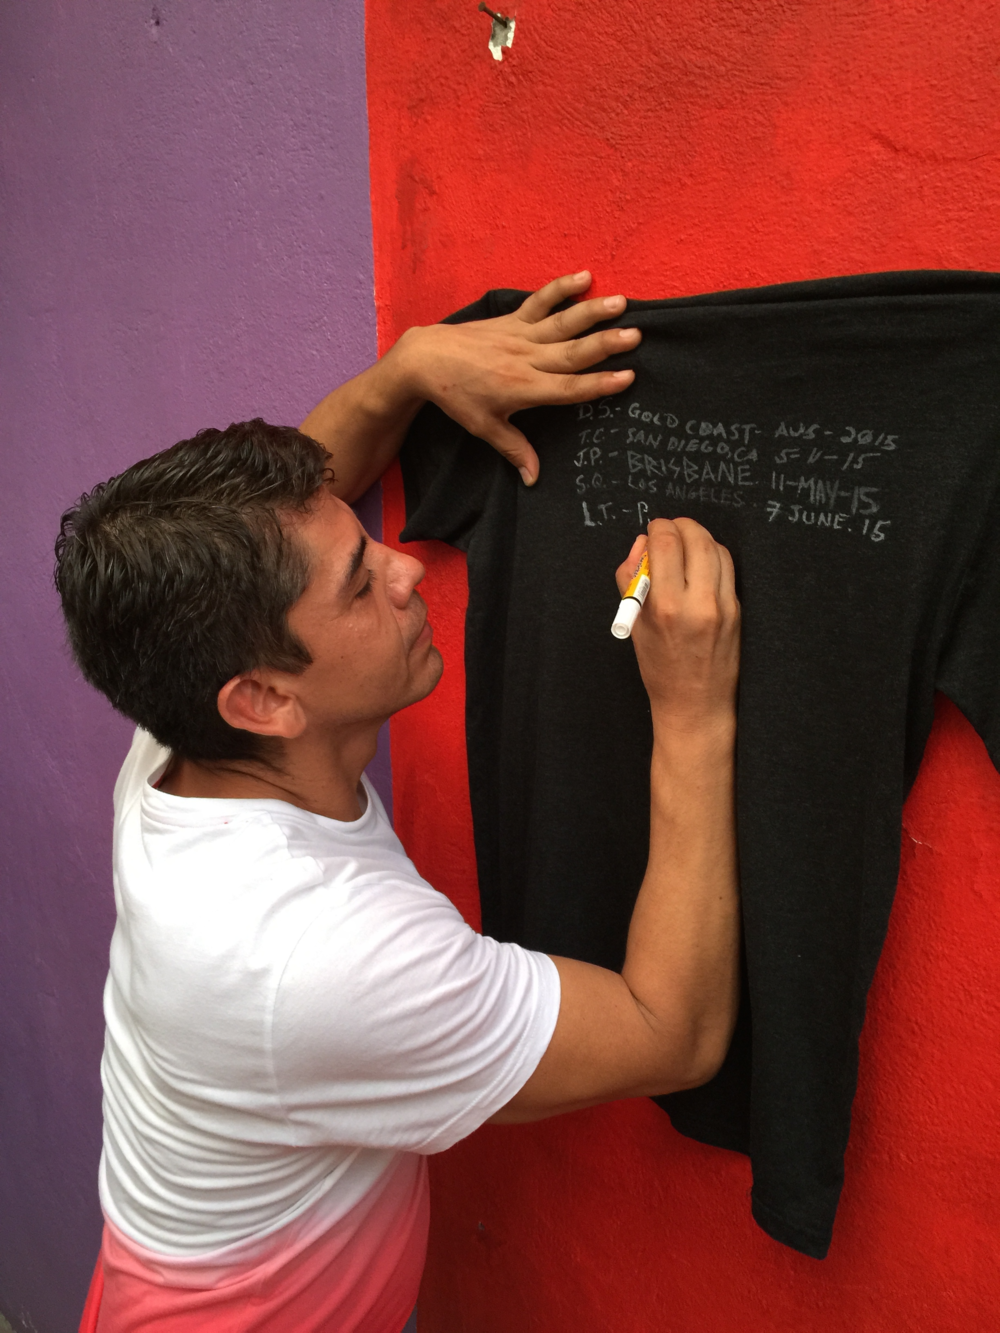 Leo signs the Do-Gooder shirt in support of our friends in Ecuador who need clean water as a result of years of oil pollution. You can too by donating  here .